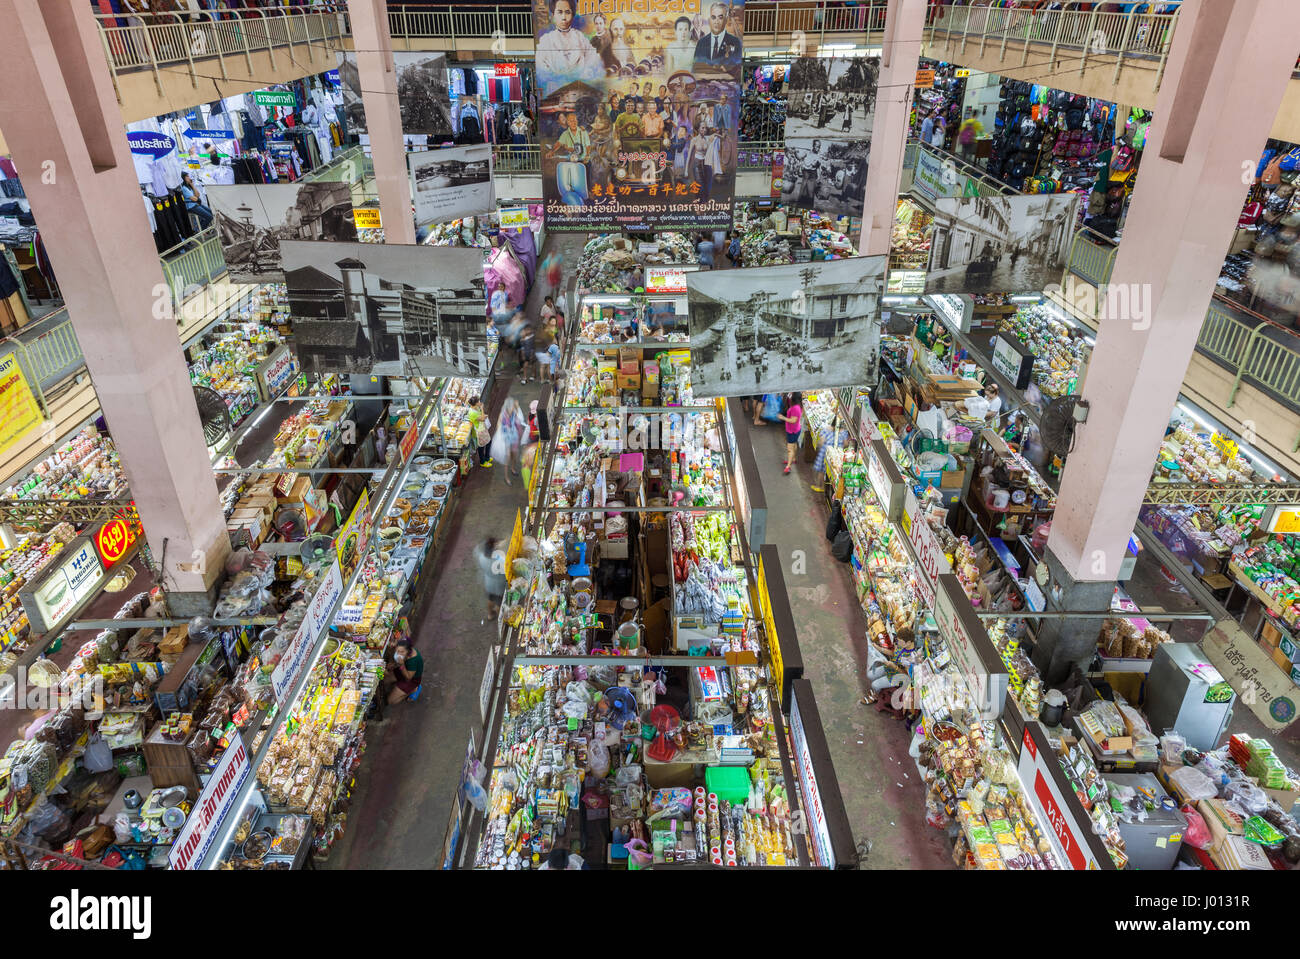 Chiang Mai, Thailand - August 27, 2016: High angle view of the Warorot market stalls on August 27, 2016 in Chiang - Stock Image